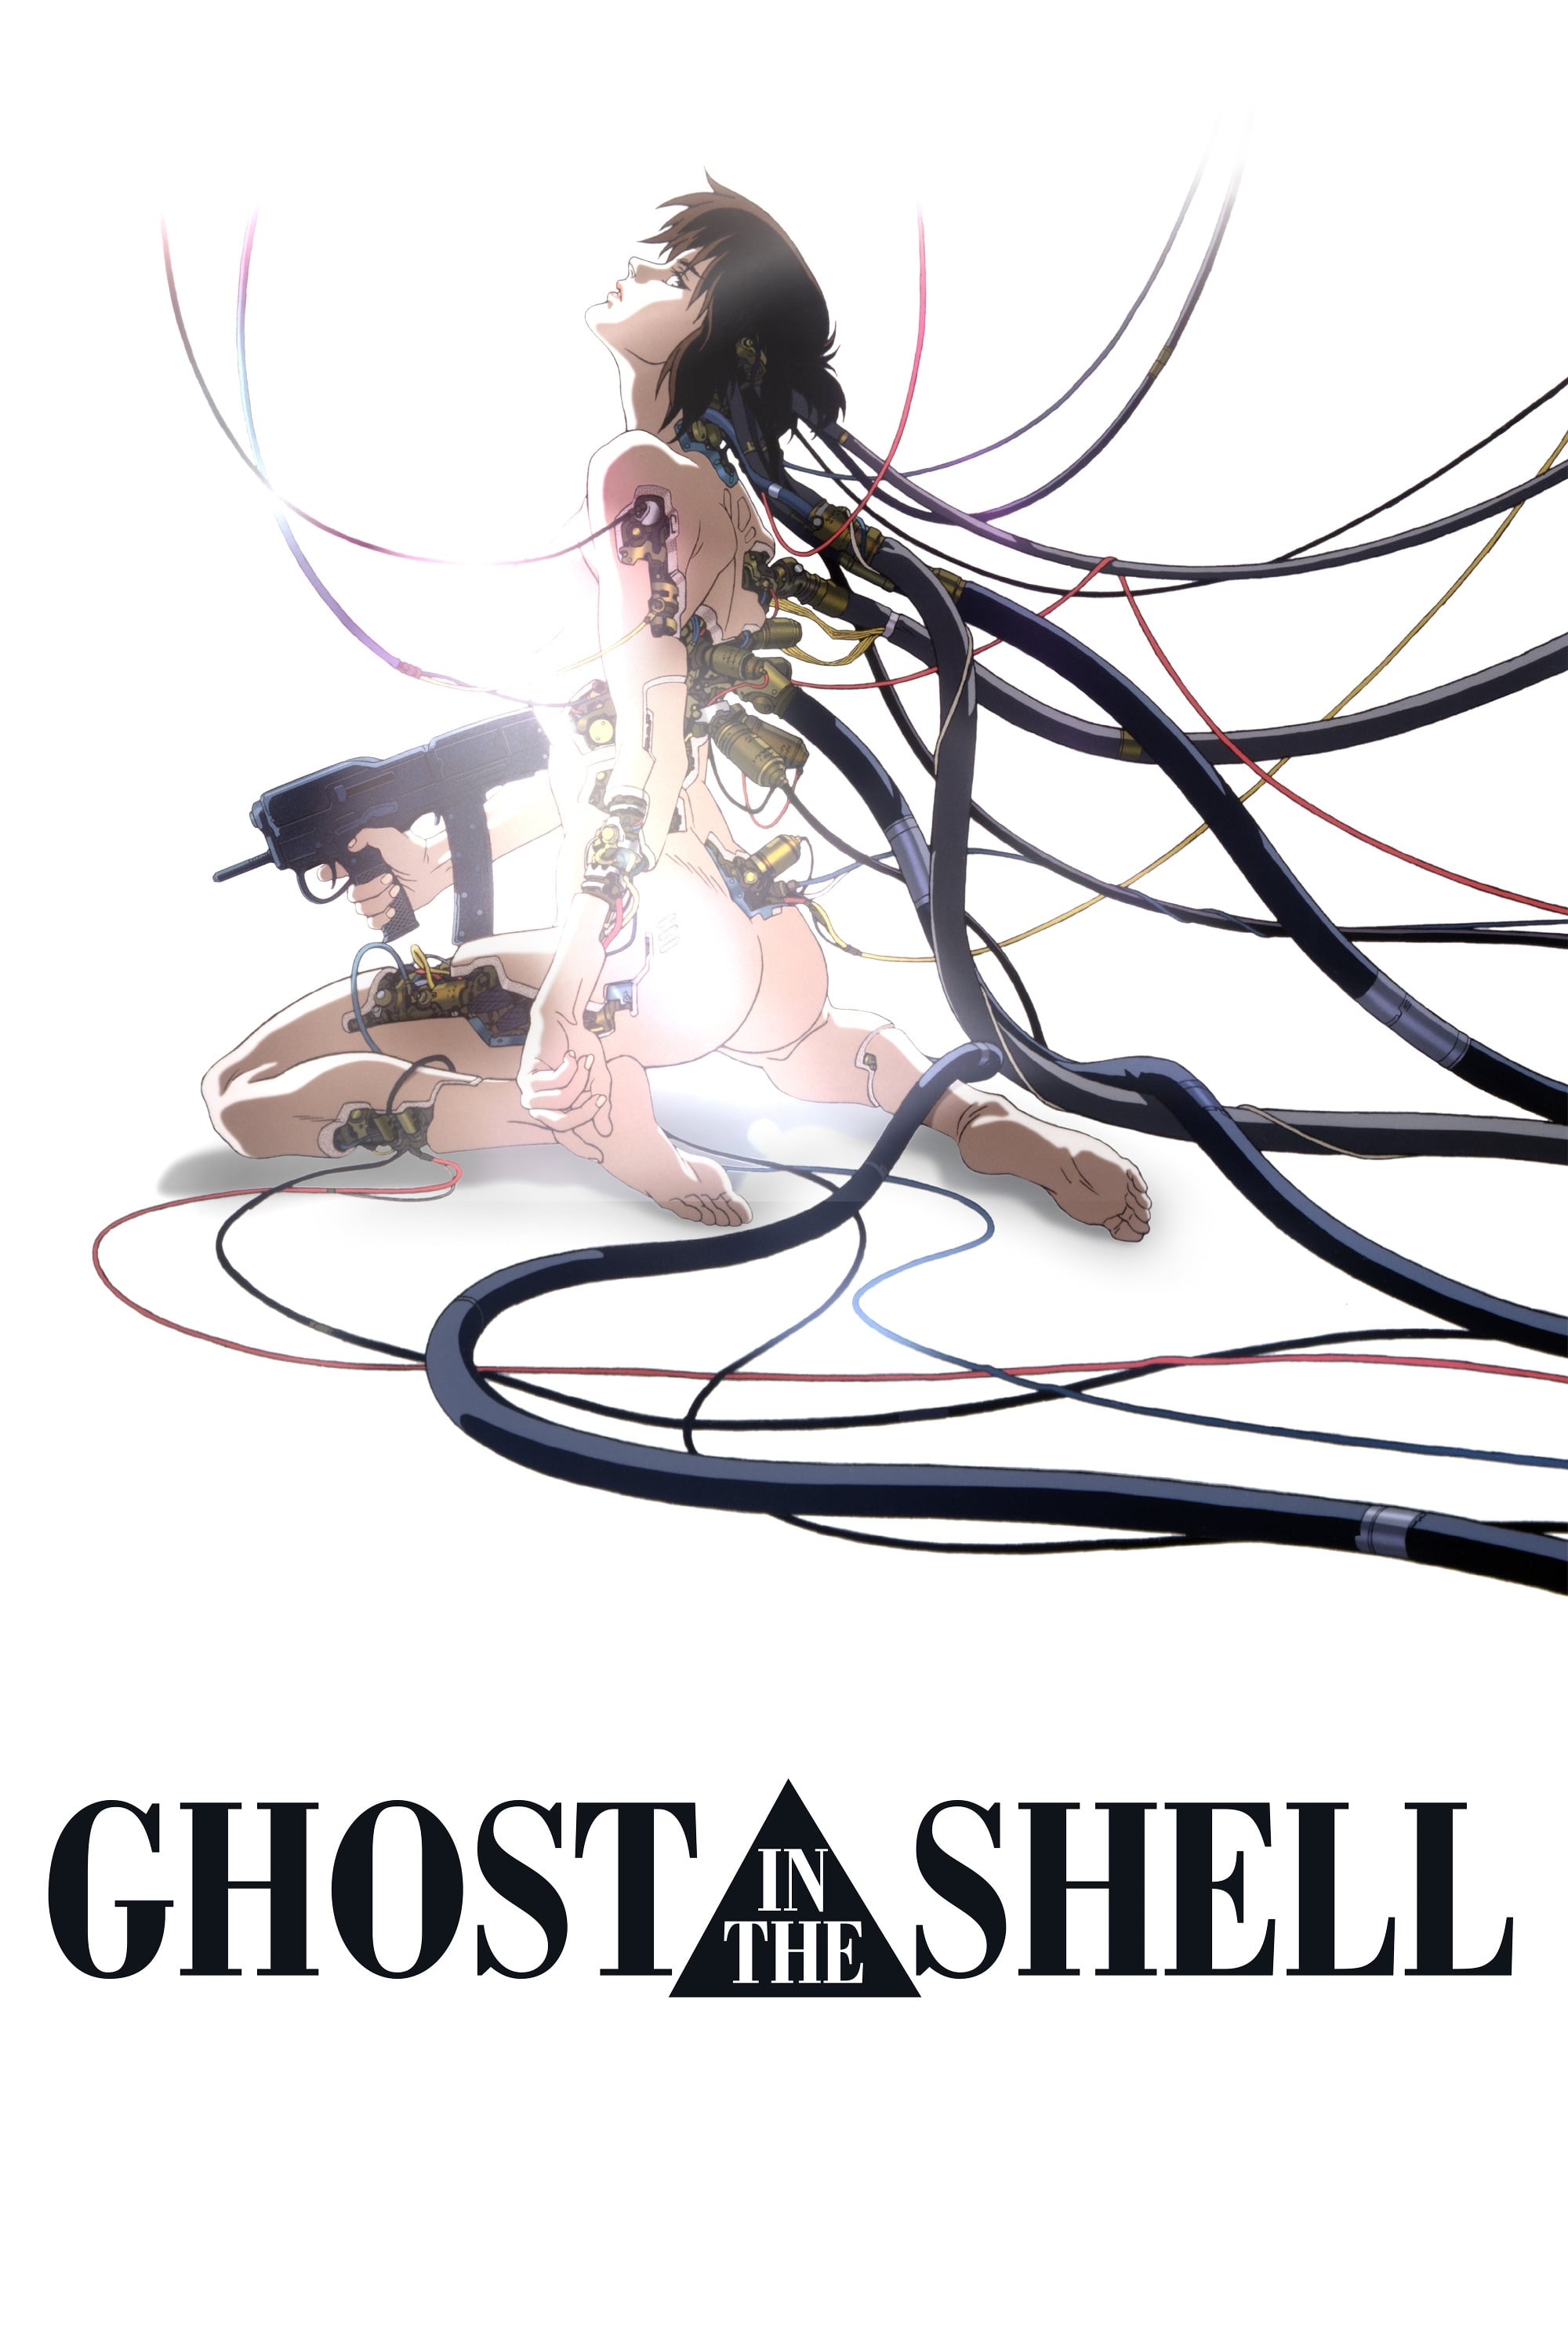 Ghost In The Shell 1995 Posters The Movie Database Tmdb